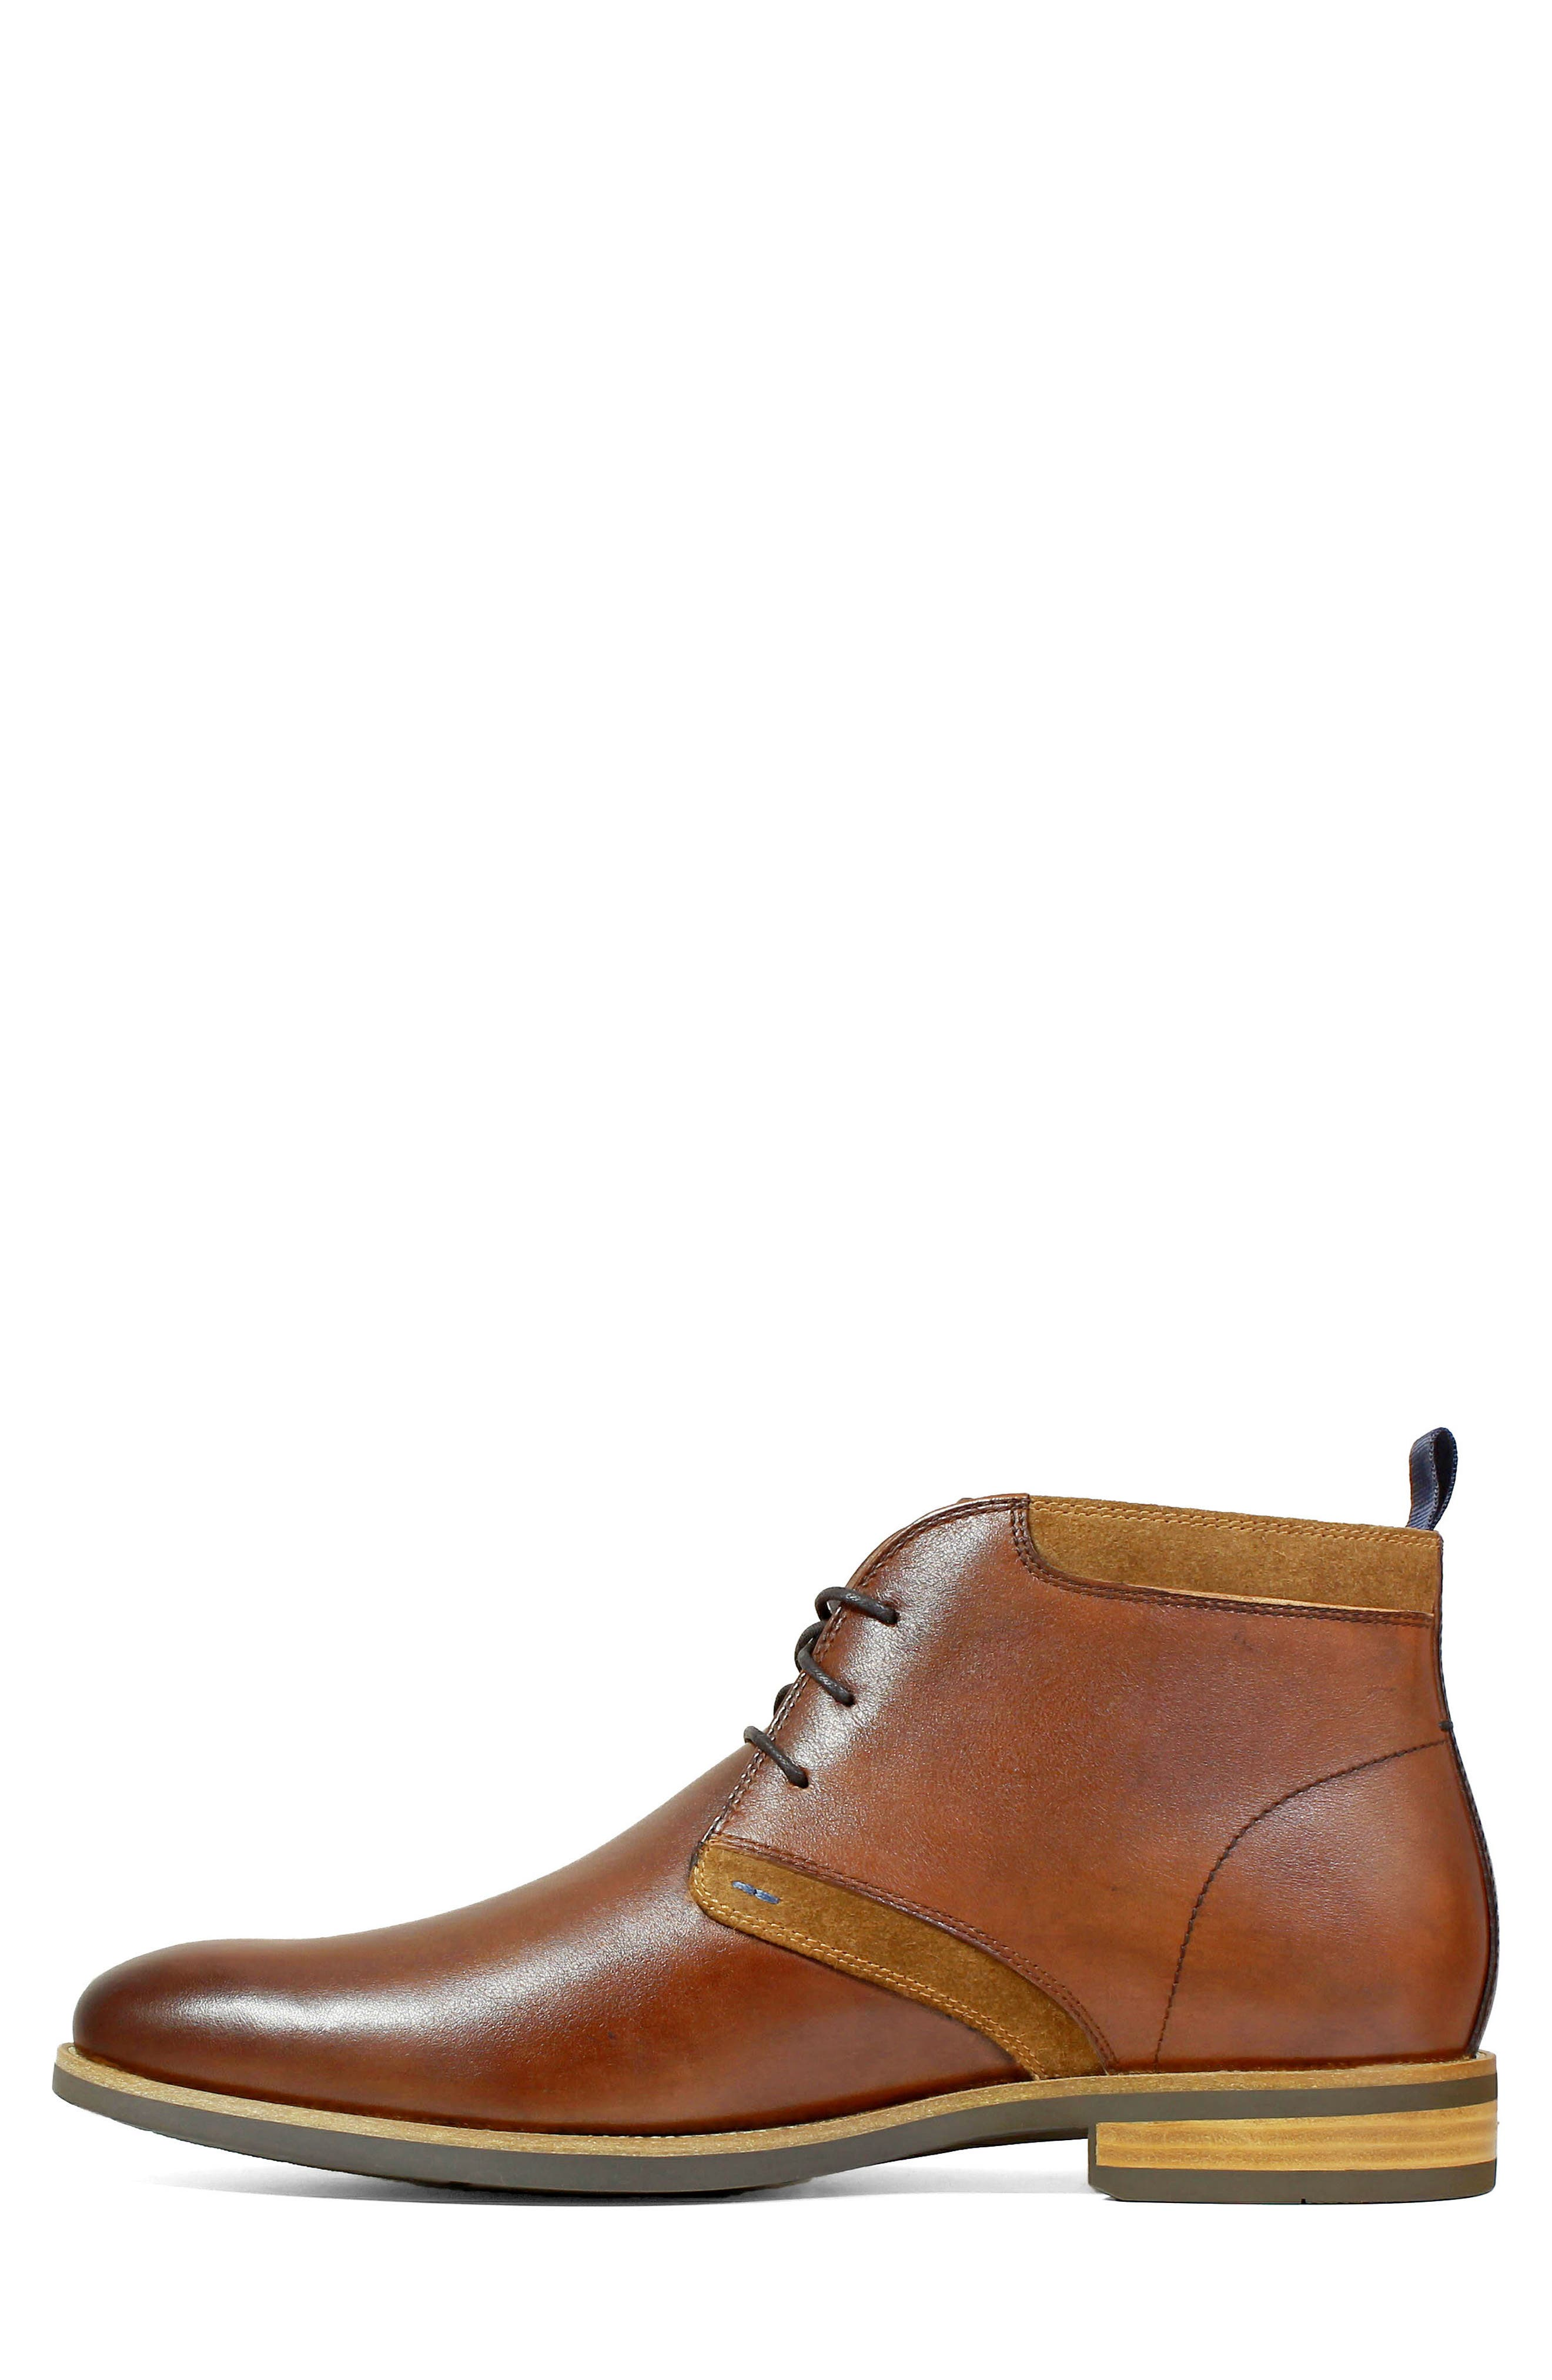 Uptown Chukka Boot,                             Alternate thumbnail 8, color,                             COGNAC LEATHER